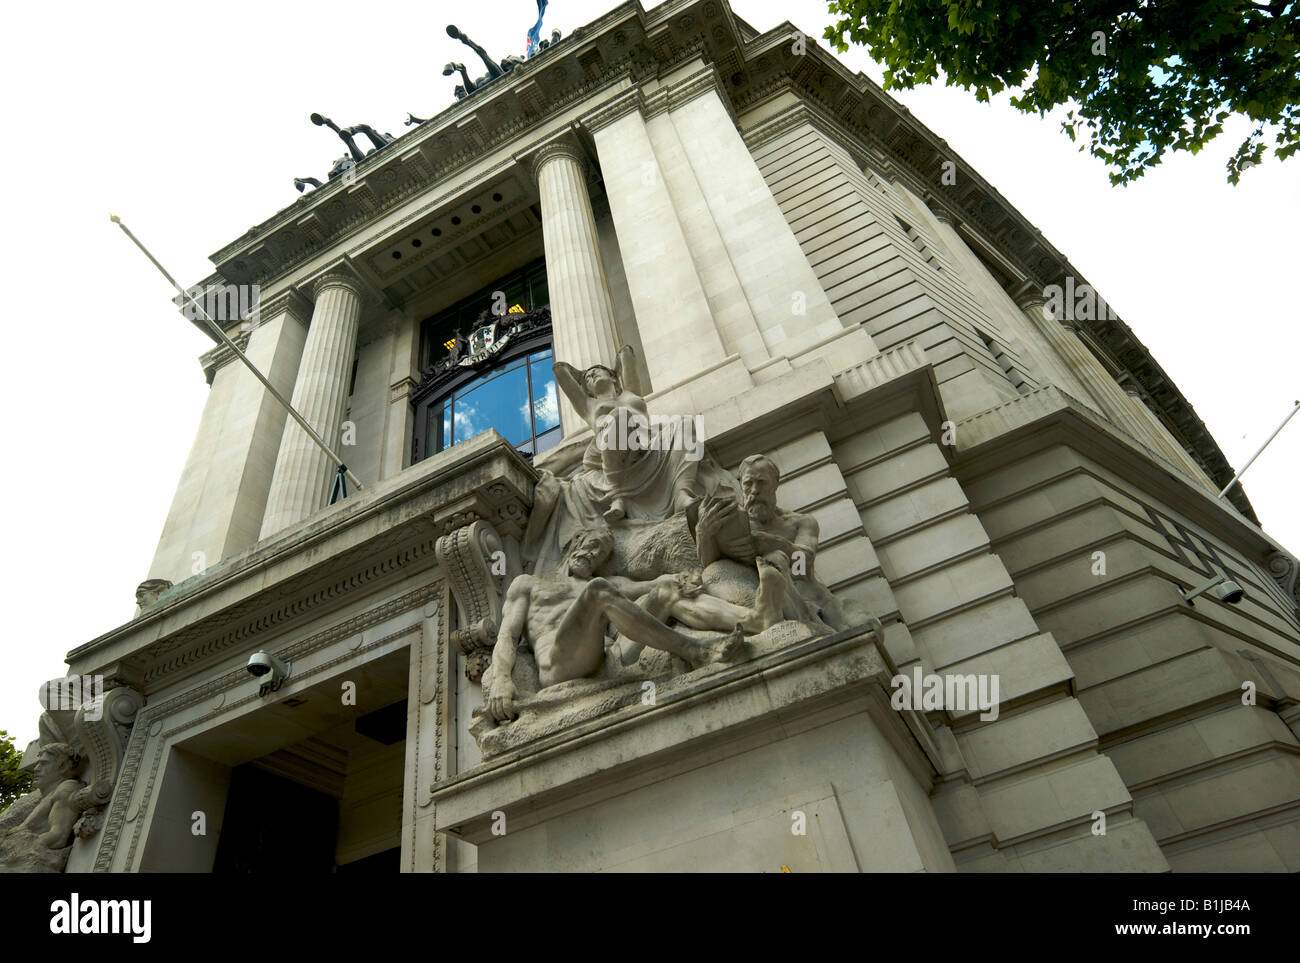 Australia House in The Aldwych London UK which houses the Austalian High Commission the first Australian diplomatic - Stock Image